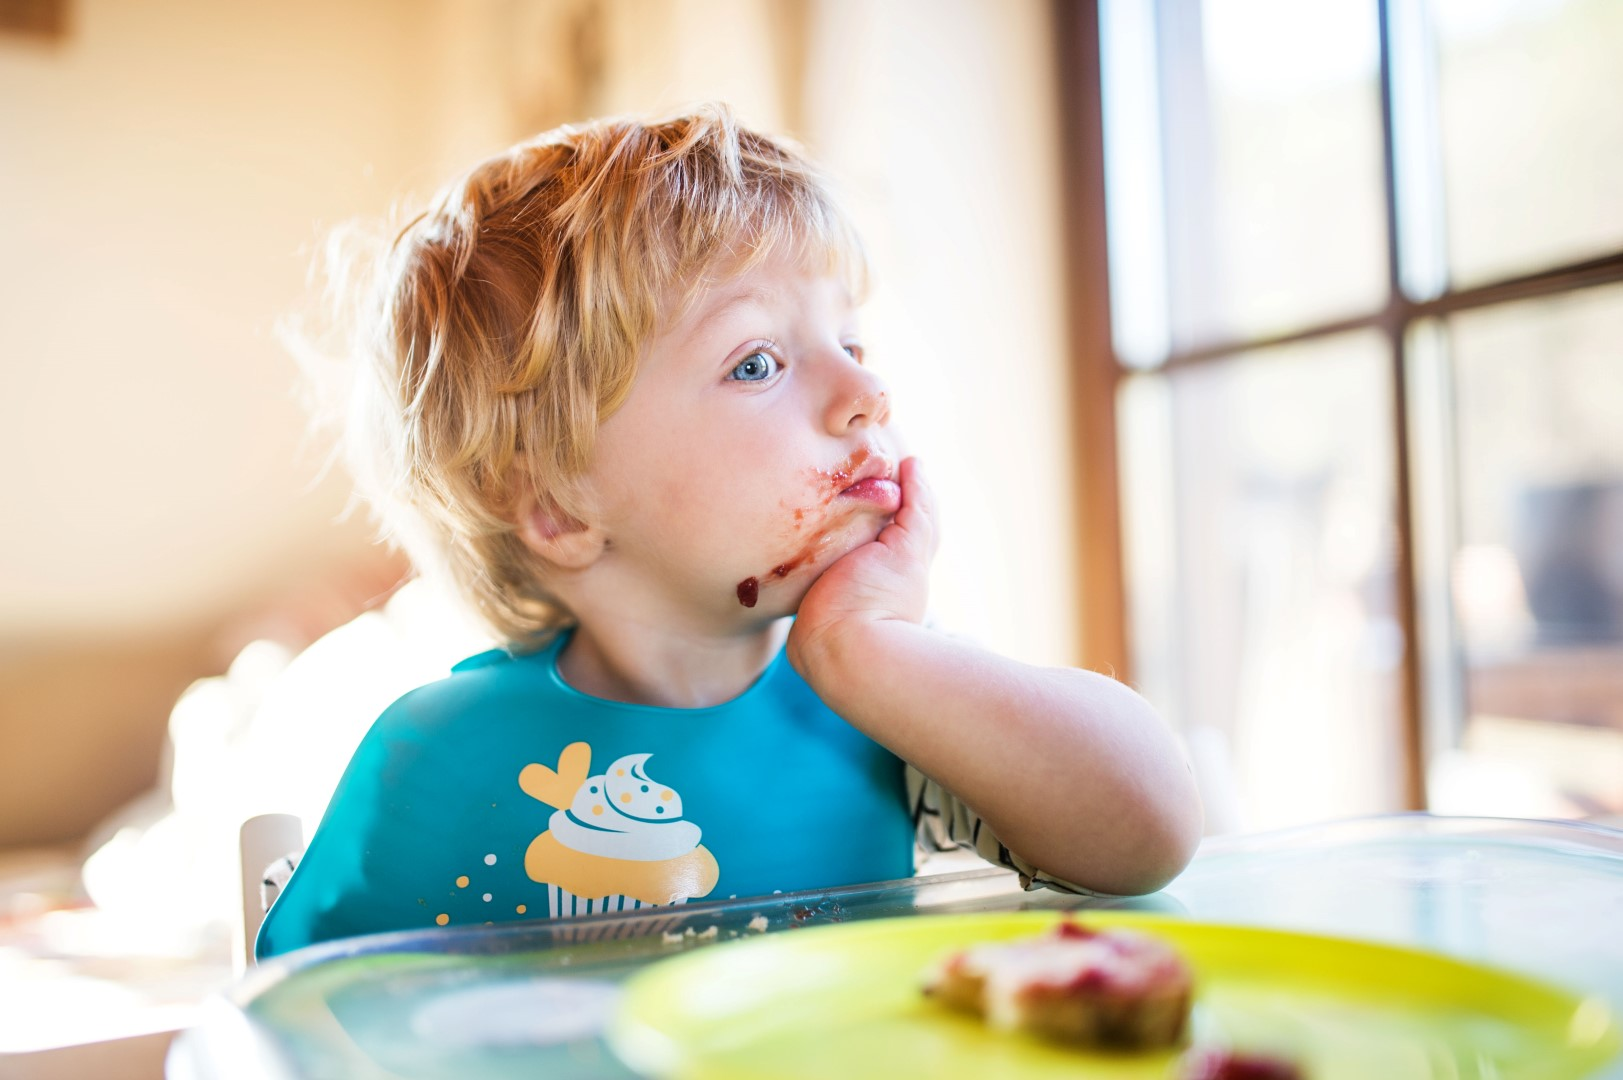 A cute toddler boy eating at home.